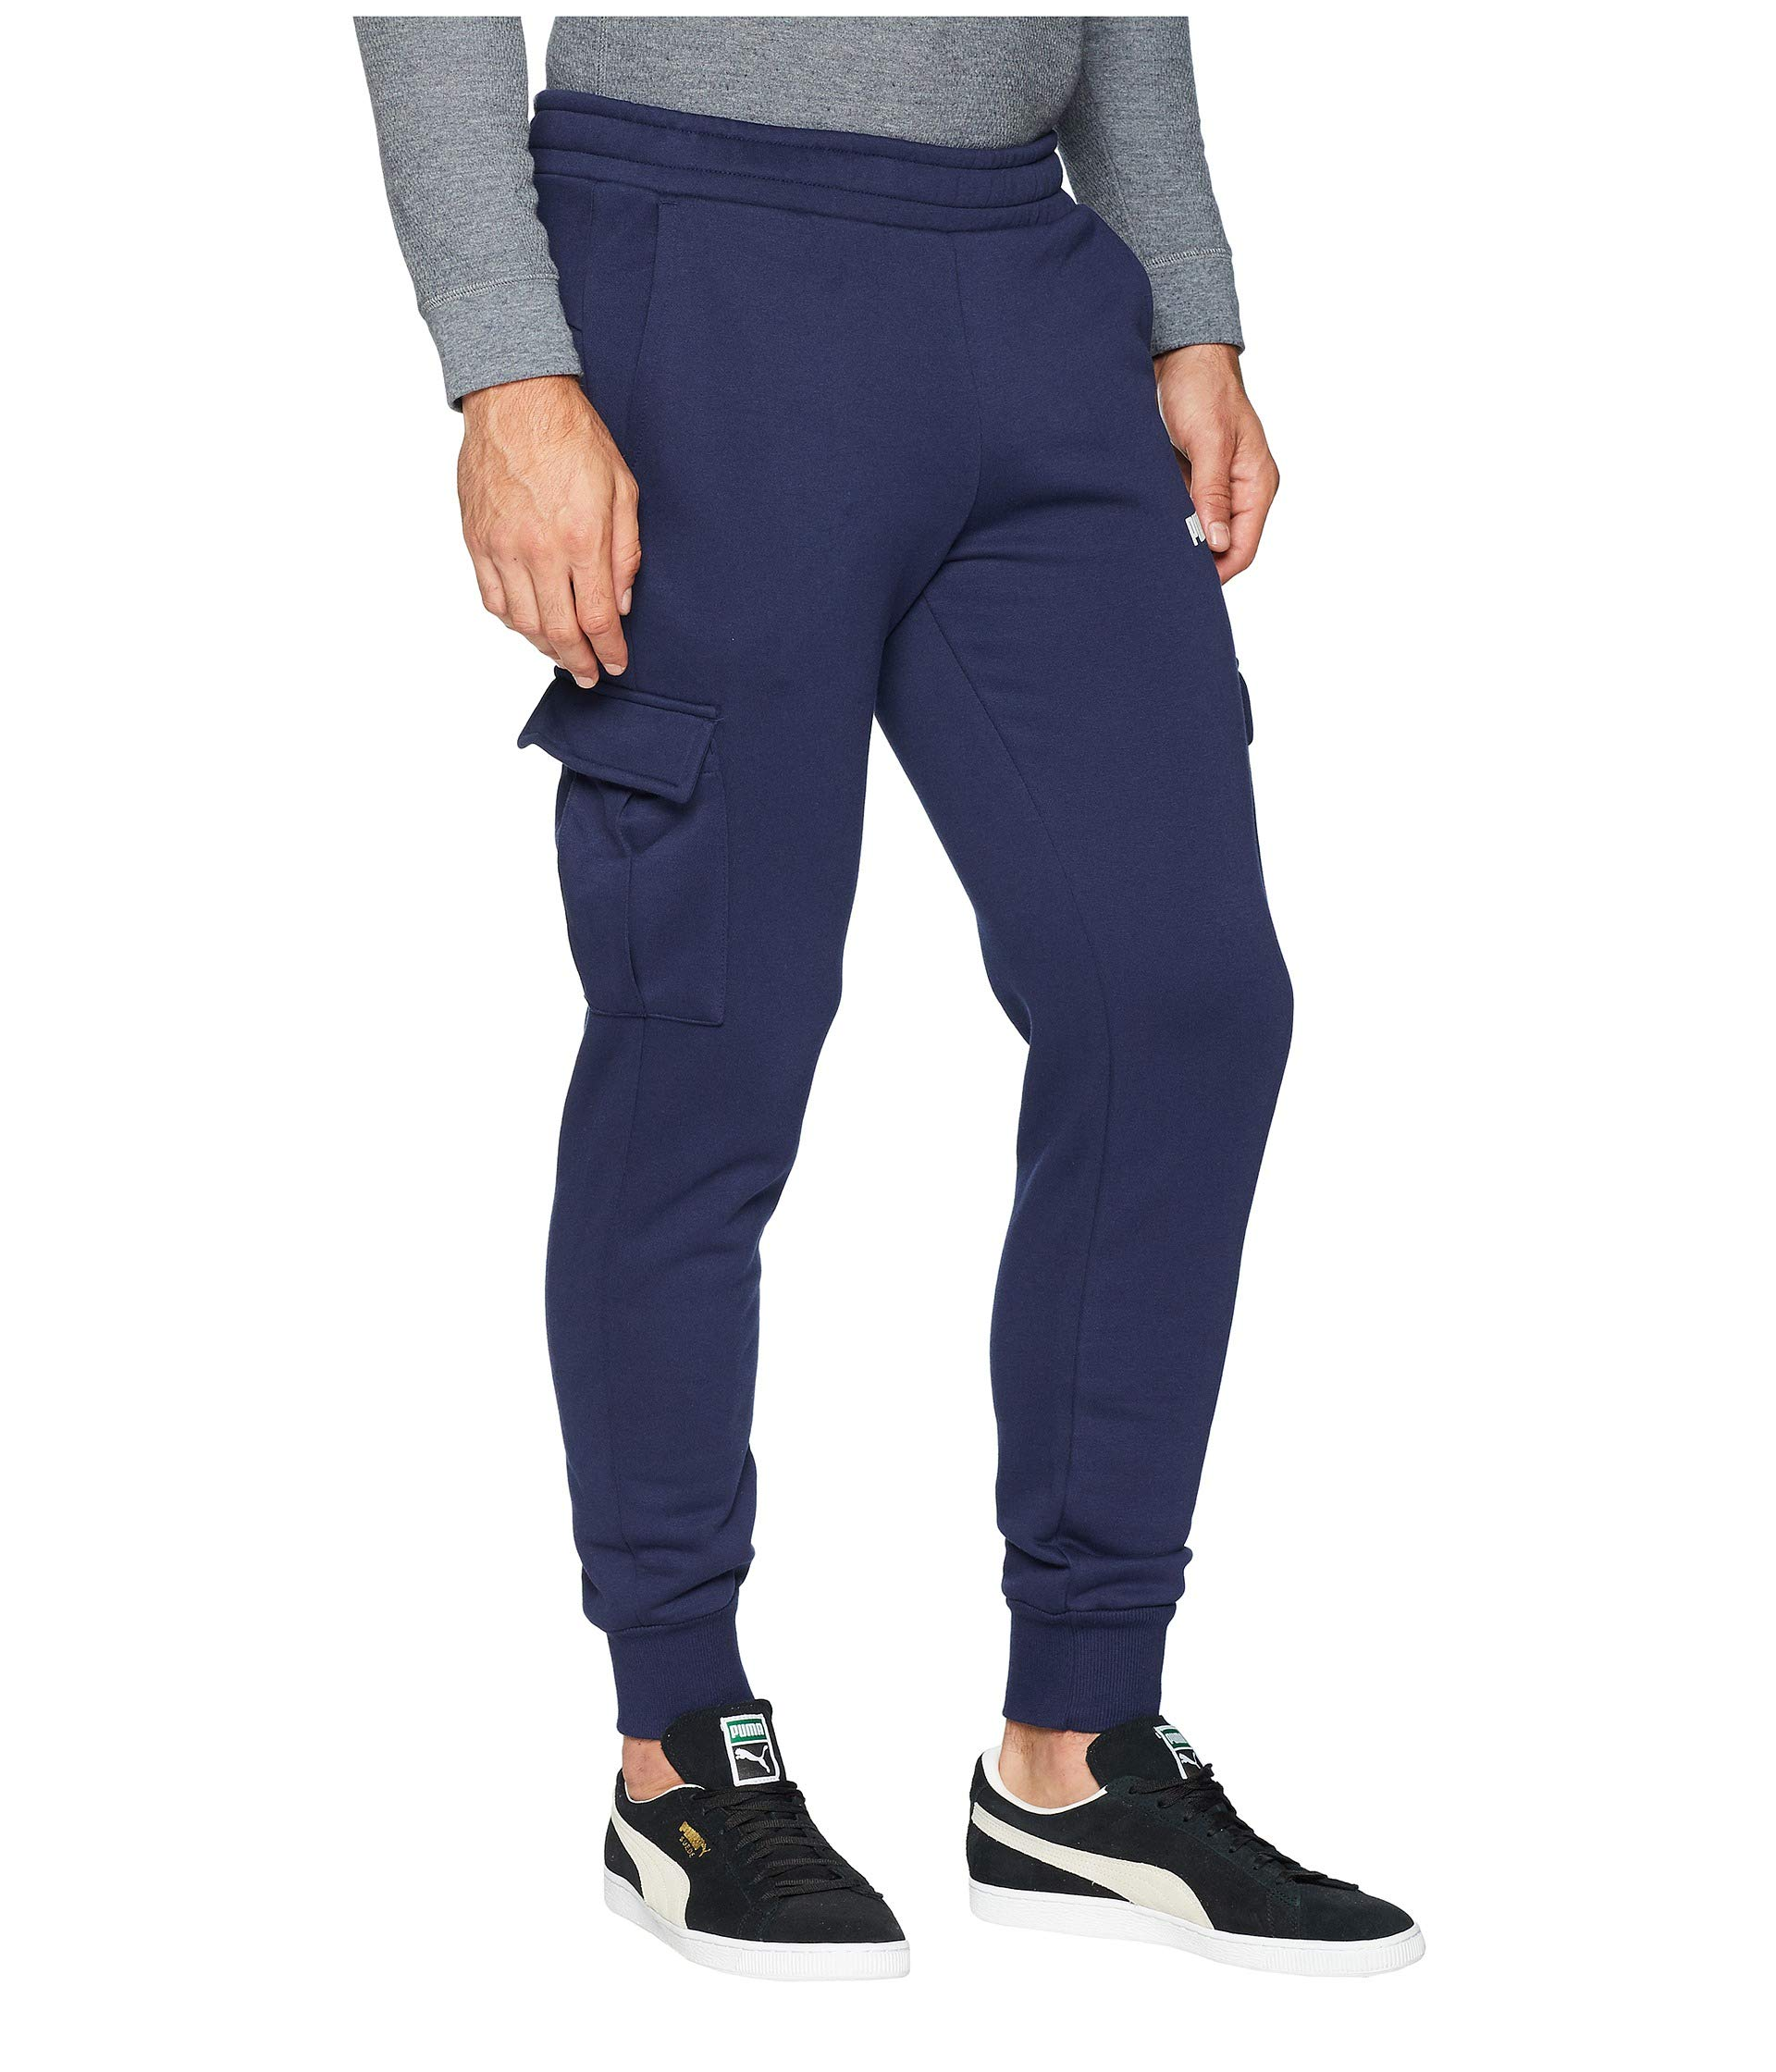 Puma Peacoat Ess Puma Pocket Pants Ess gYq8Zgw